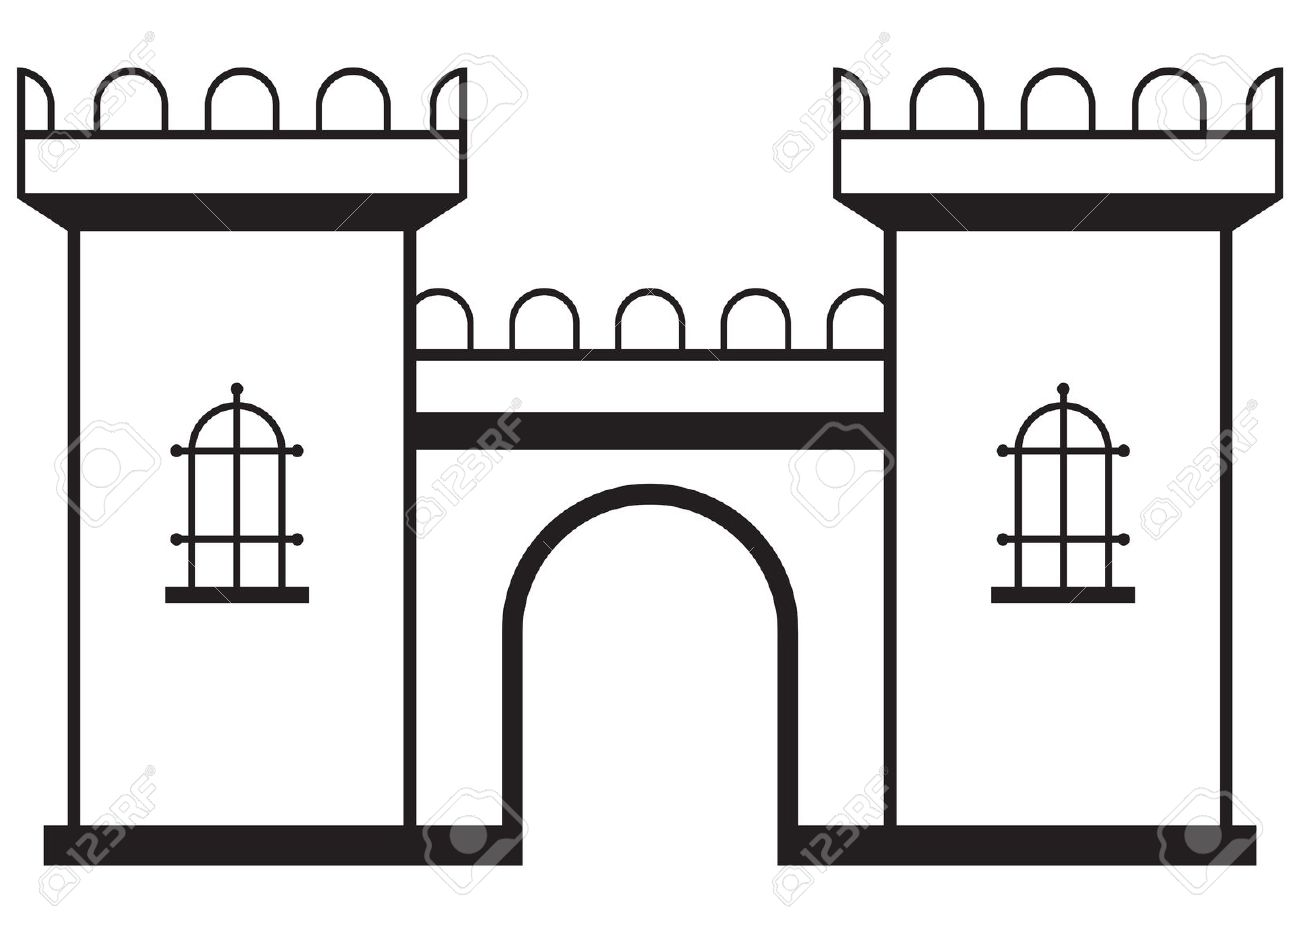 Palace clipart castle wall. Free silhouette cliparts download